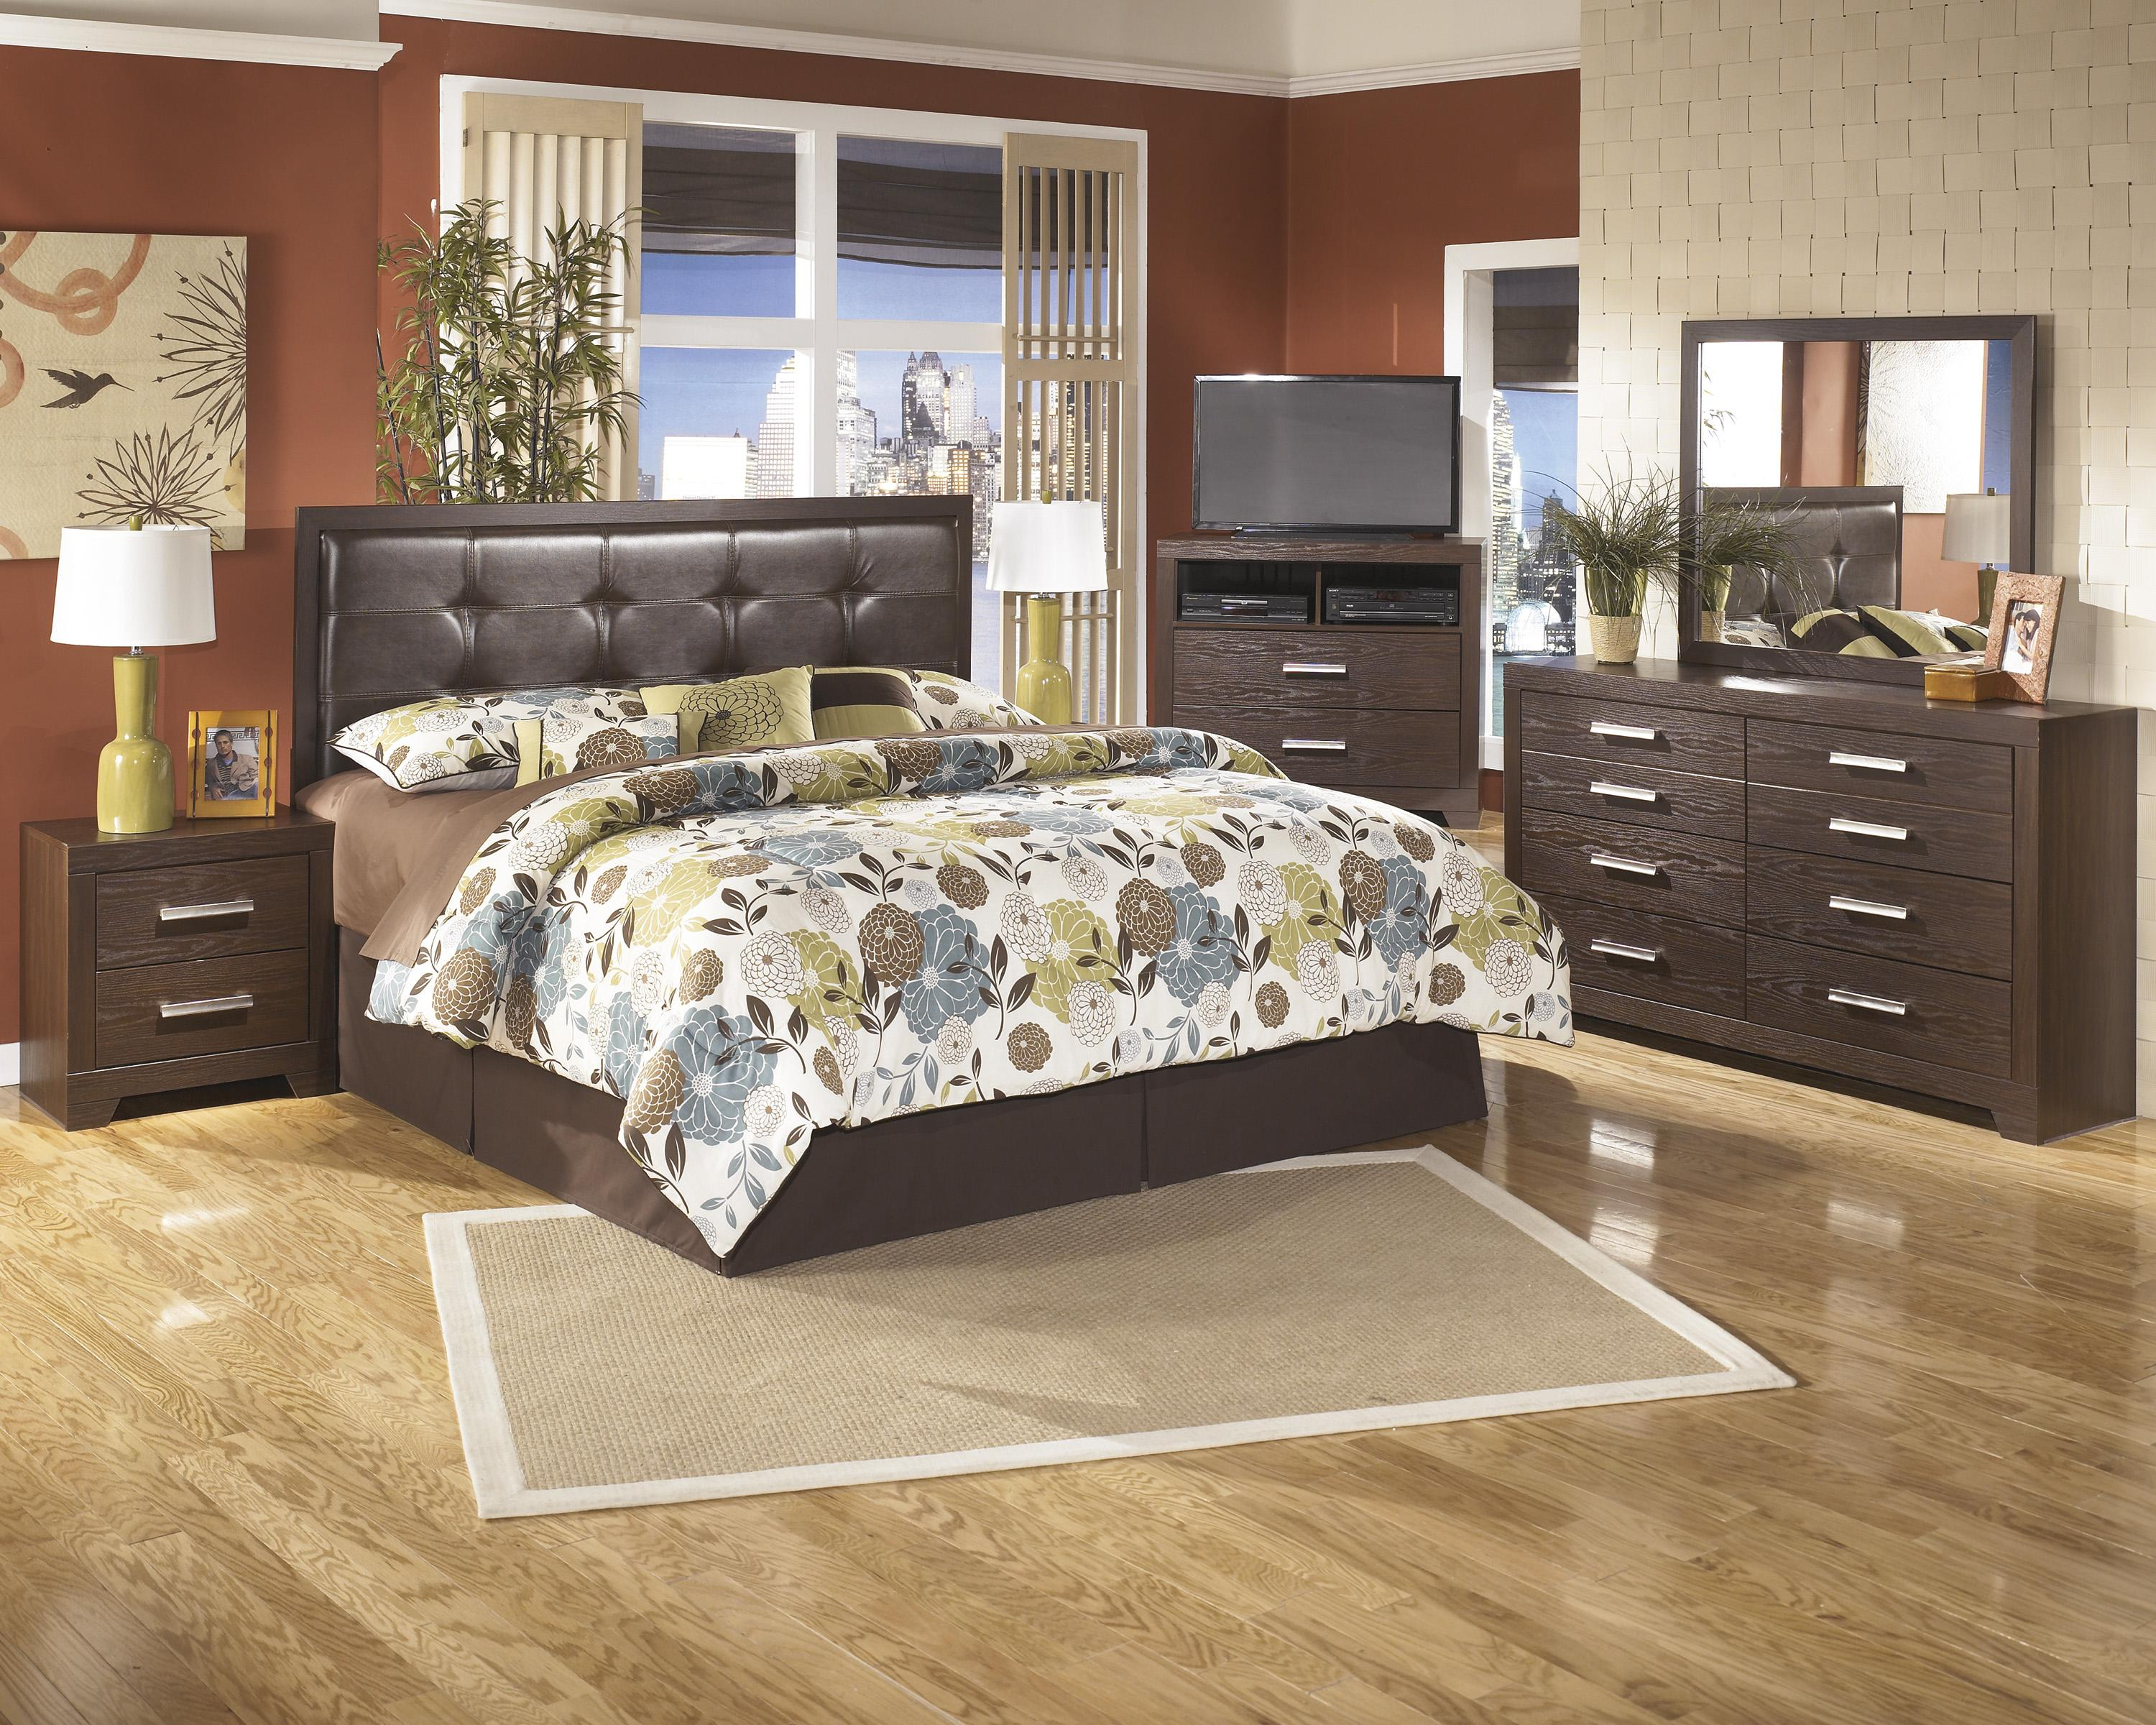 Signature Design by Ashley Aleydis King Bedroom Group - Item Number: B165 K Bedroom Group 1